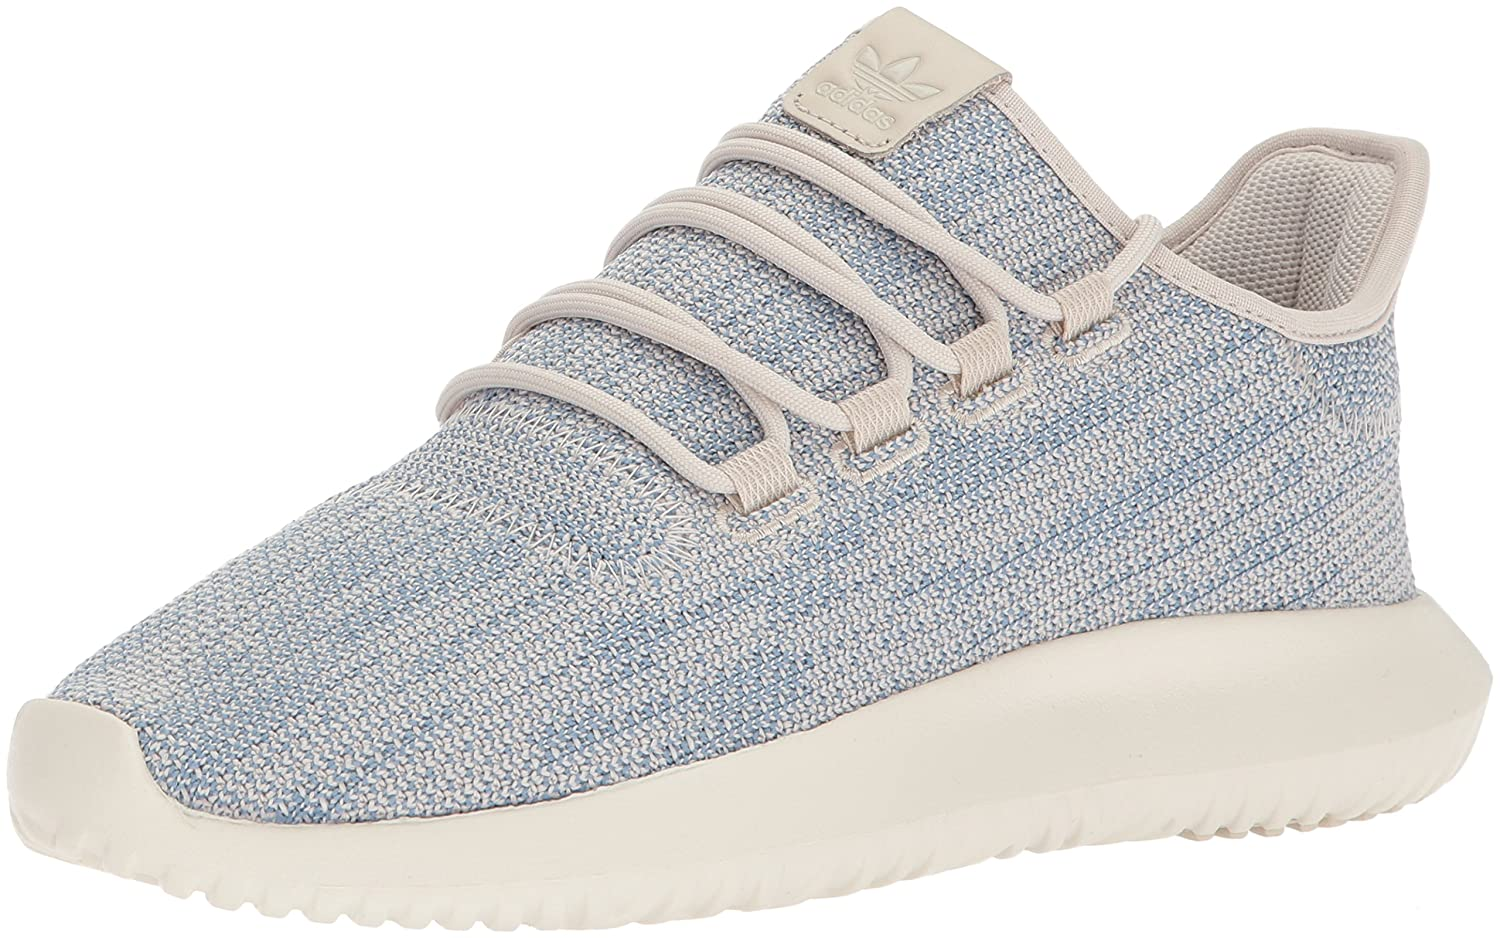 new concept 87a6e 88478 Amazon.com   adidas Originals Men s Tubular Shadow Ck Fashion Sneakers  Running Shoe Clear Brown Tactile Blue Chalk White 10 M US   Fashion Sneakers